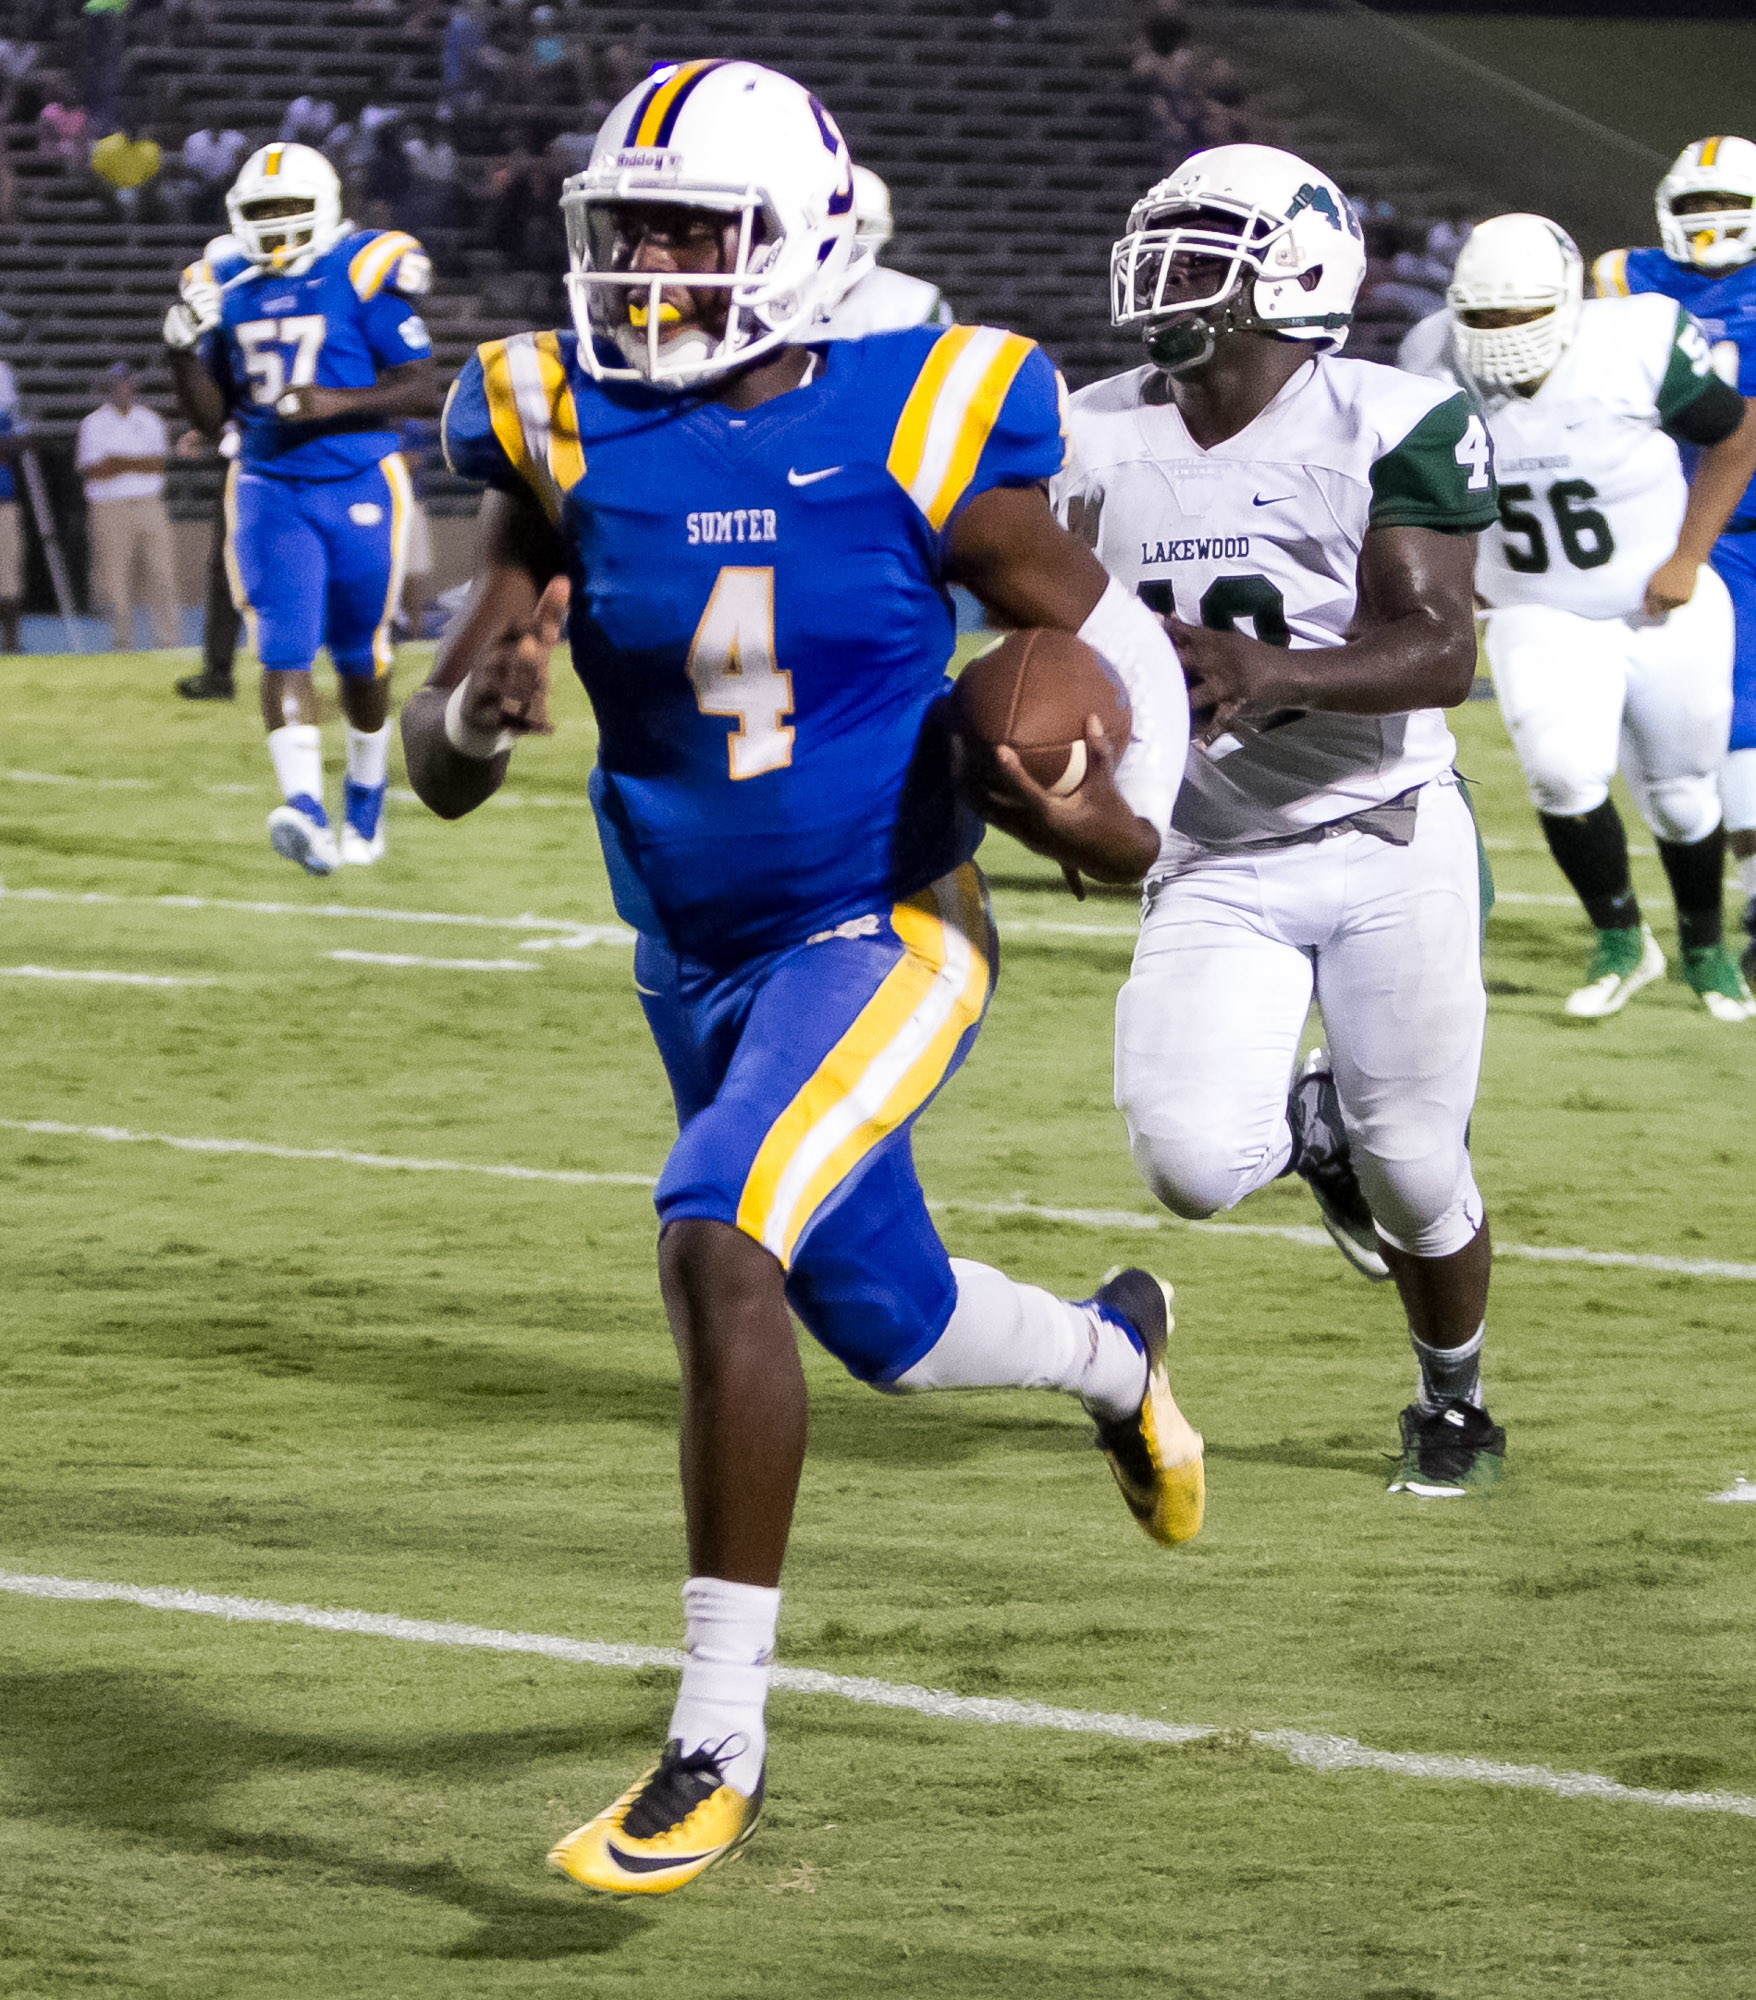 Sumter quarterback Zykiem Jackson (4) outruns Lakewood's Greg Brunson (4) for a big gain during the Gamecocks' 41-29 victory on Friday at Memorial Stadium.